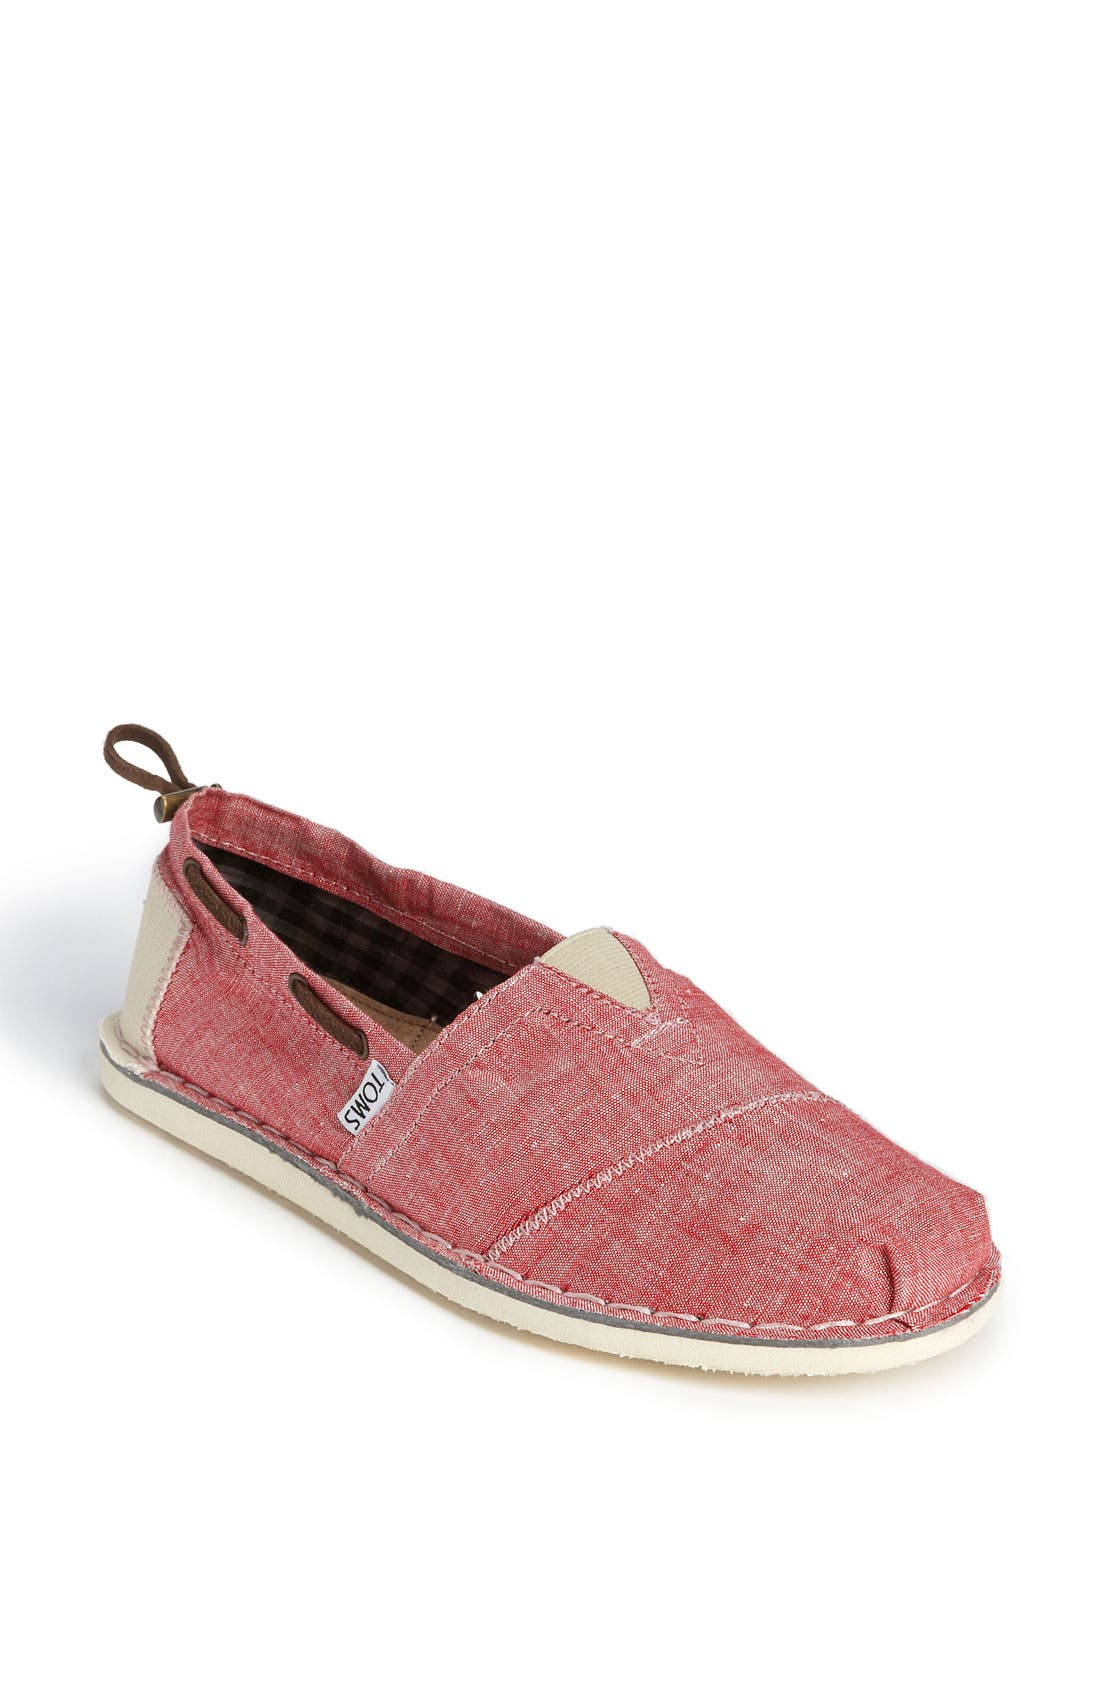 Alternate Image 1 Selected - TOMS 'Bimini - Stitchout' Chambray Slip-On (Men)